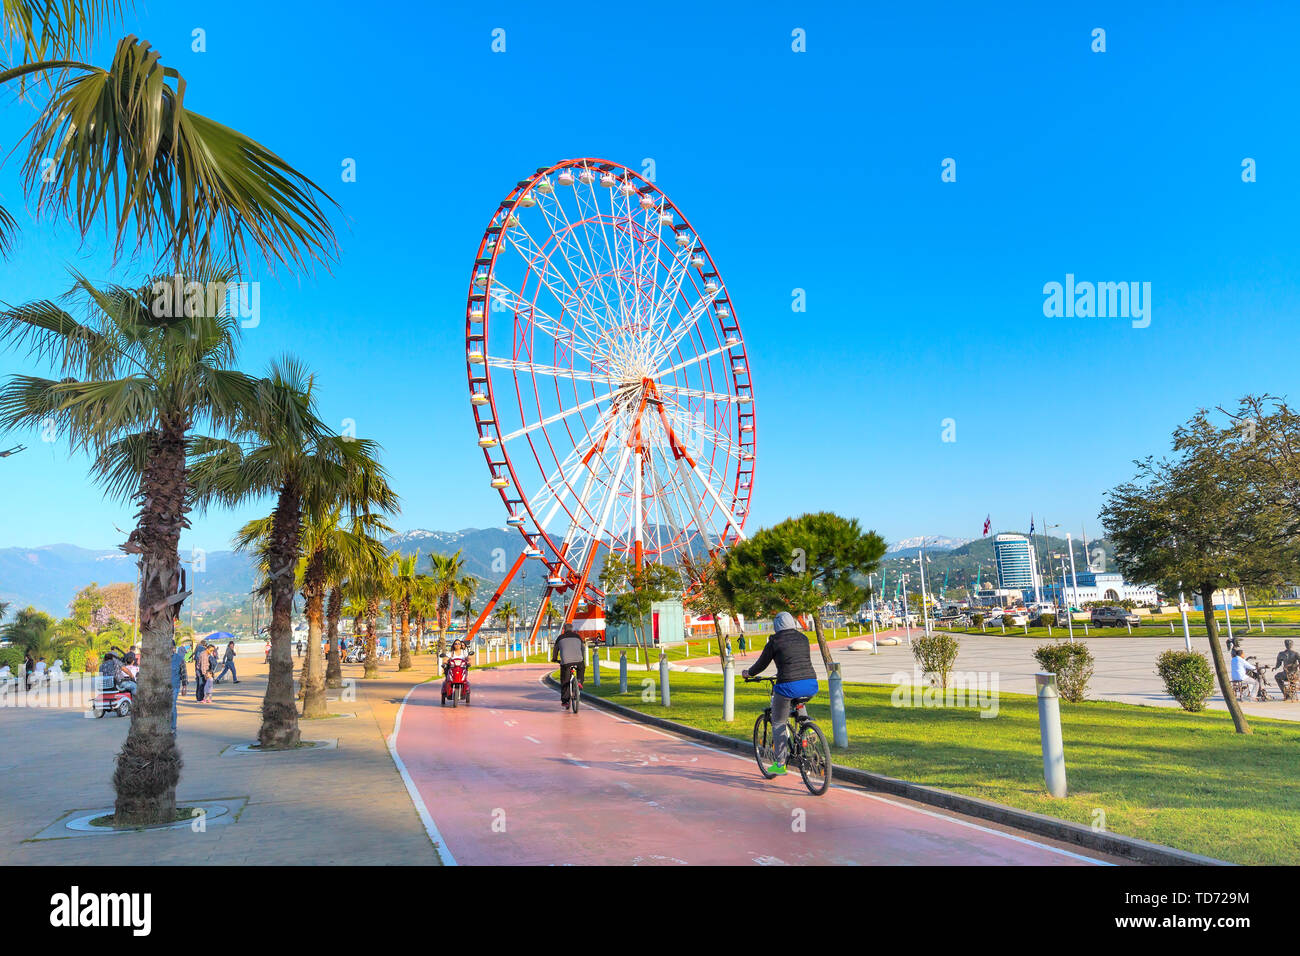 Batumi, Georgia - April 30, 2017: Ferris wheel, city panoramic landscape with port and mountain peaks of Batumi, summer Black sea resort - Stock Image